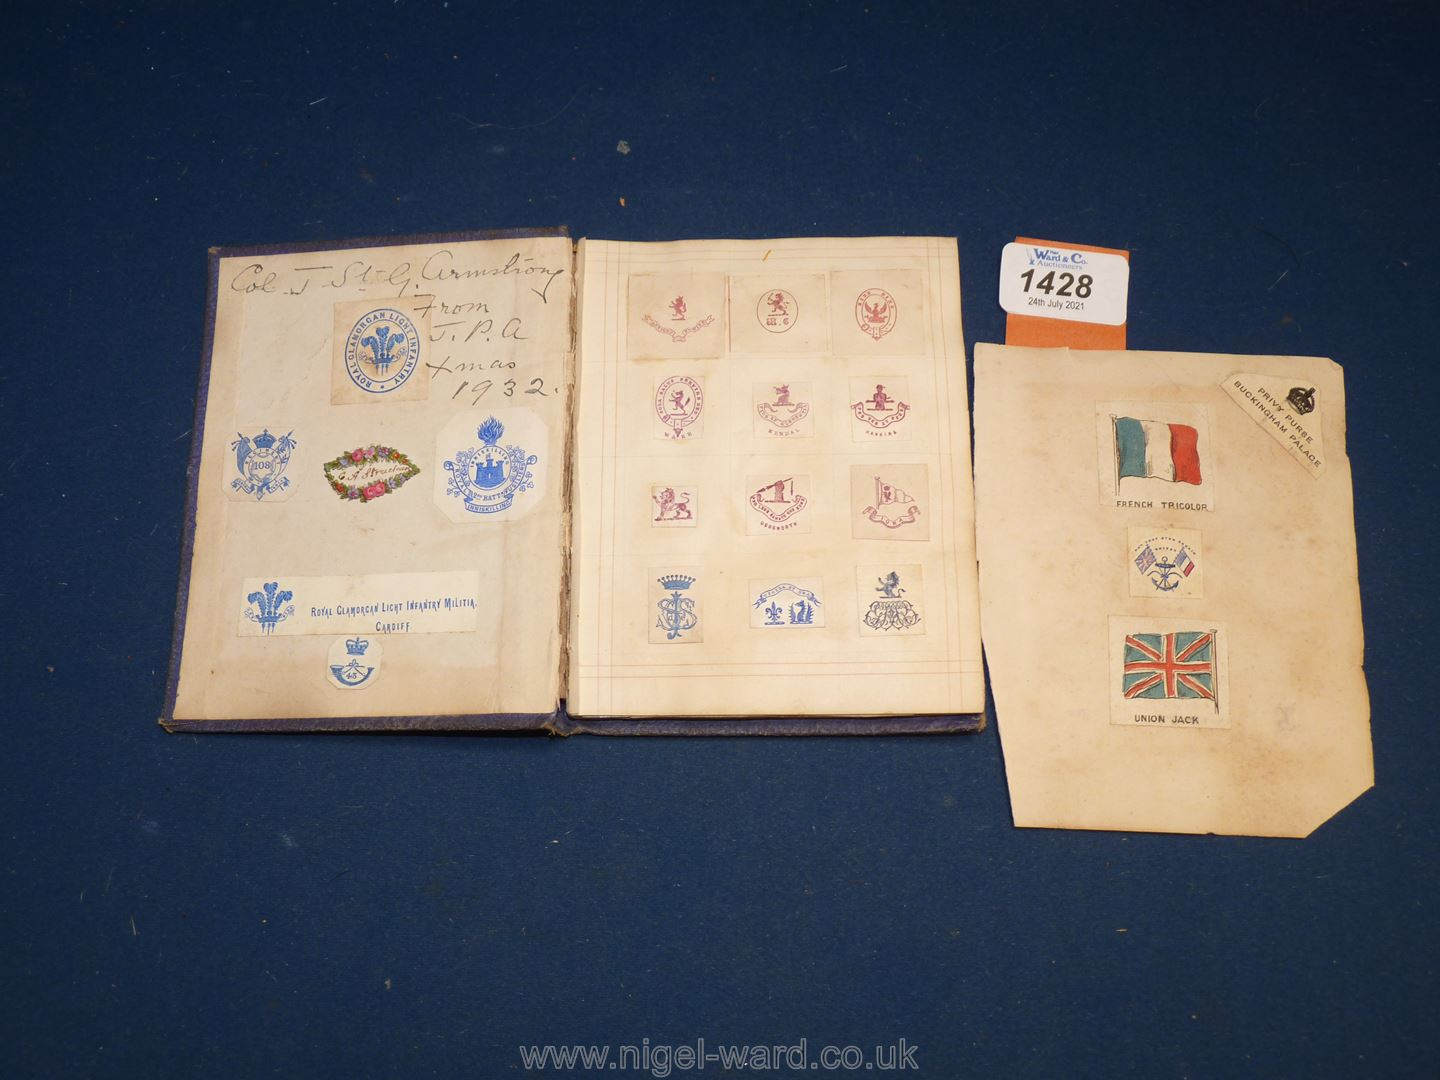 An interesting album of Coats of Arms, ciphers etc including Queen Victoria's family, nobility, - Image 5 of 7